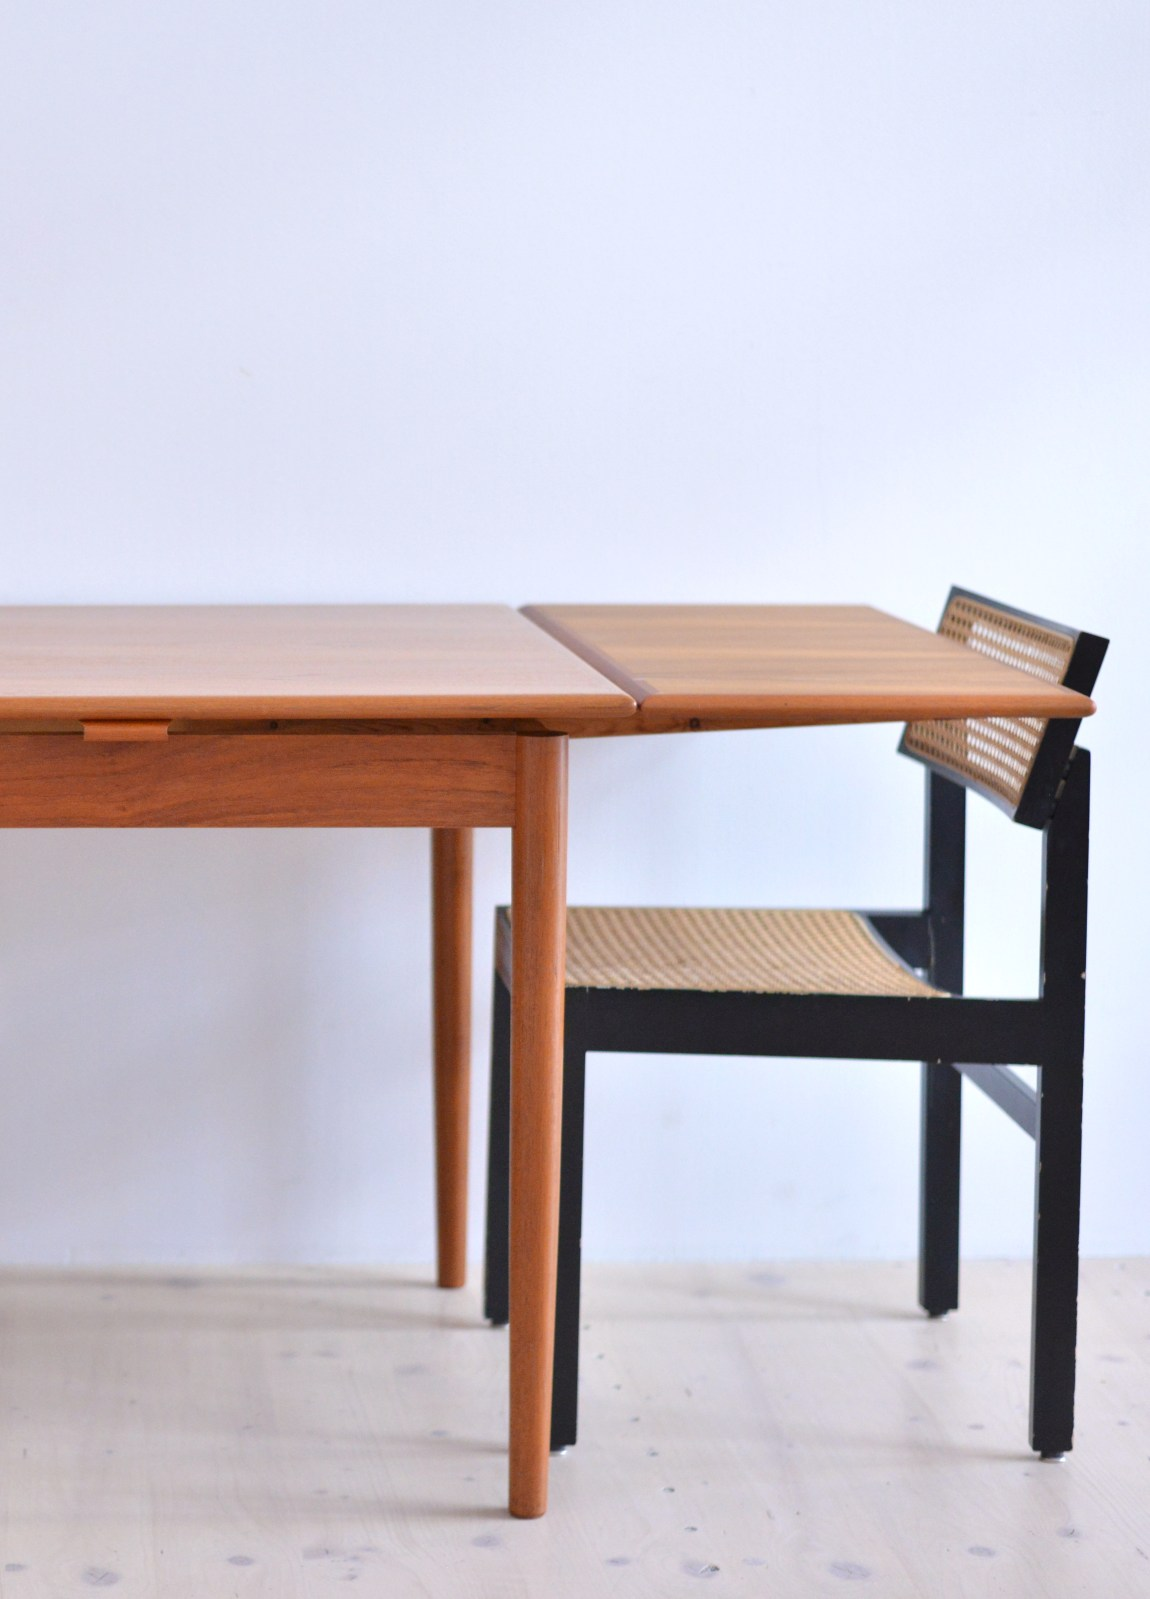 AM Möbler Teak Dining Table Made In Denmark 1960s heyday möbel moebel Zurich Binz Altstetten Vintage and Mid-Century